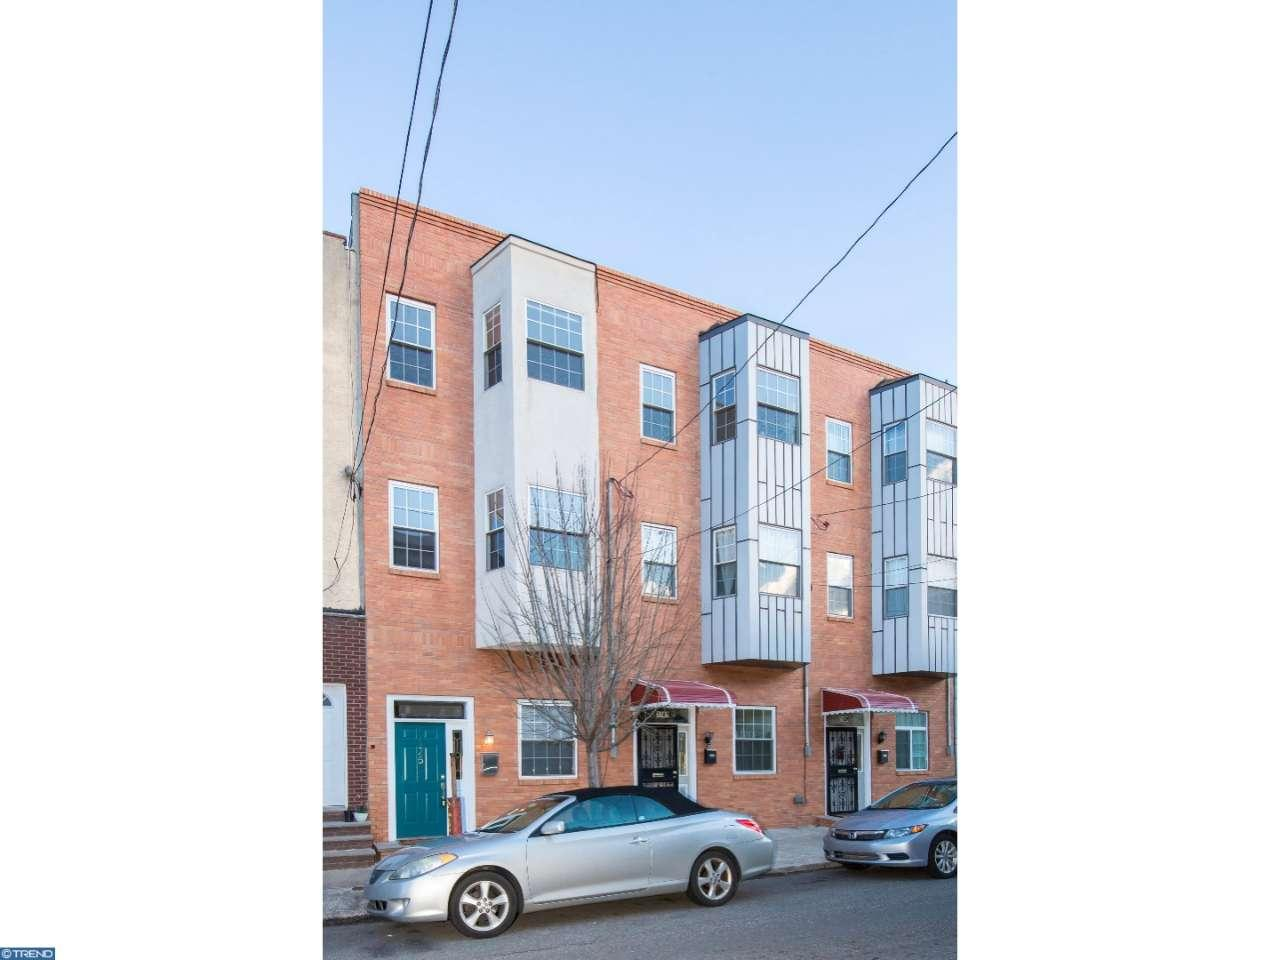 Property for sale at 1125 S 13TH ST, Philadelphia,  PA 19147